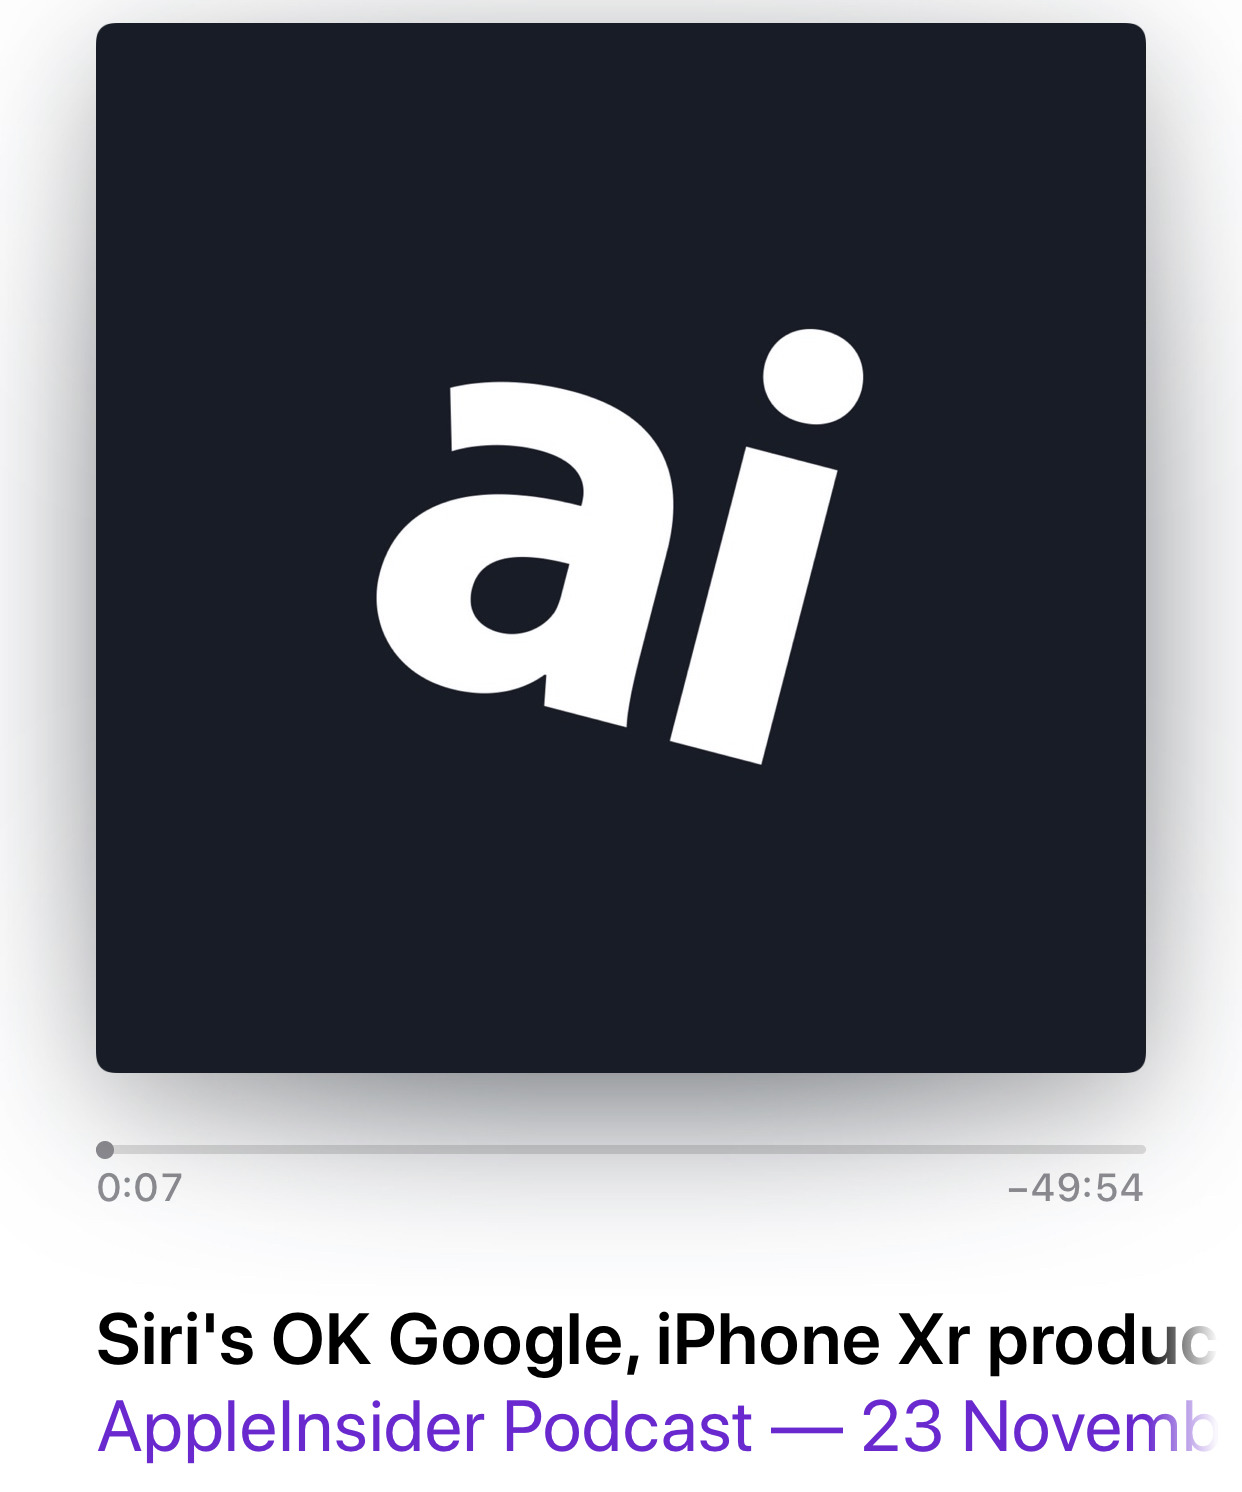 Detail from the AppleInsider Podcast